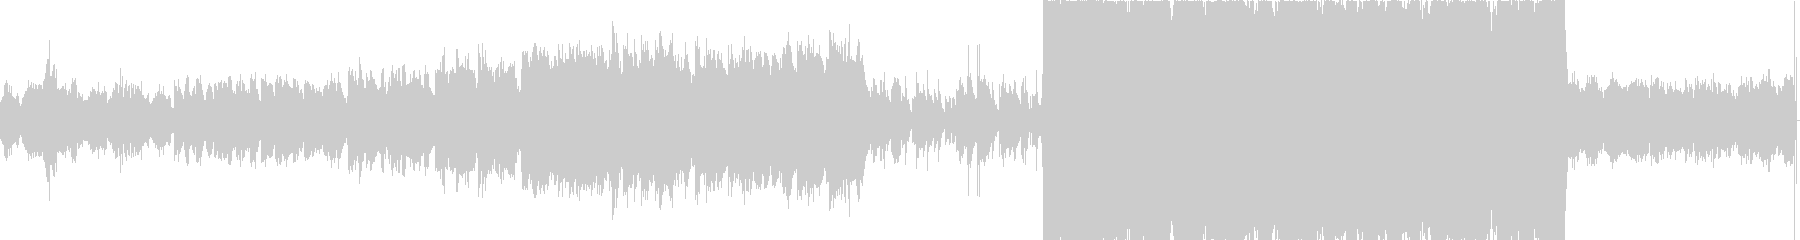 Image of an old horror movie's unreproduced waveform